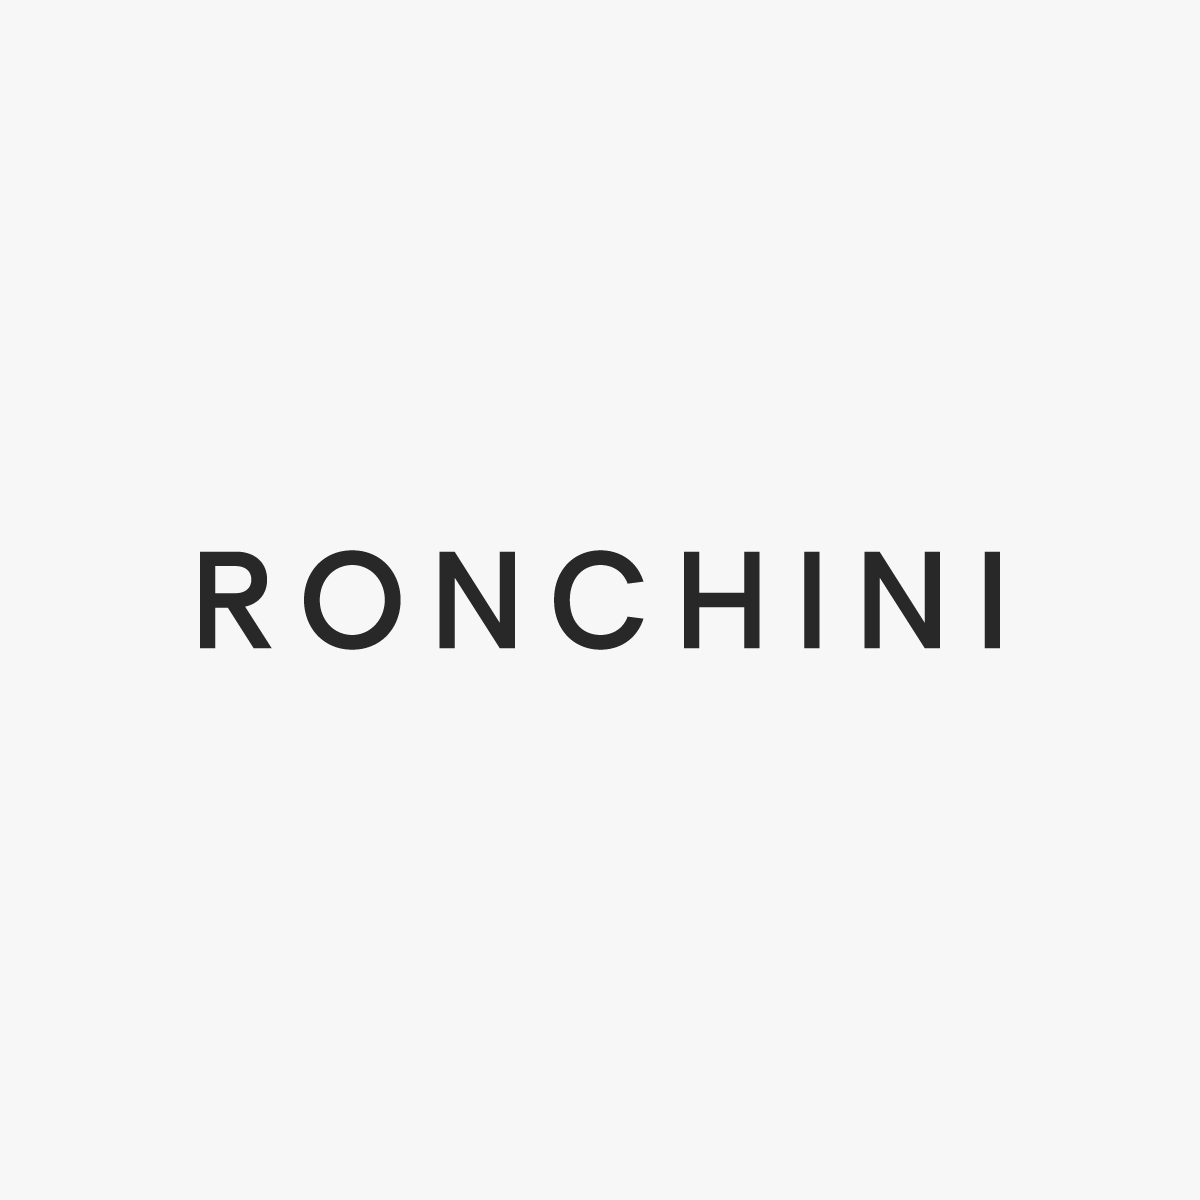 Ronchini Gallery